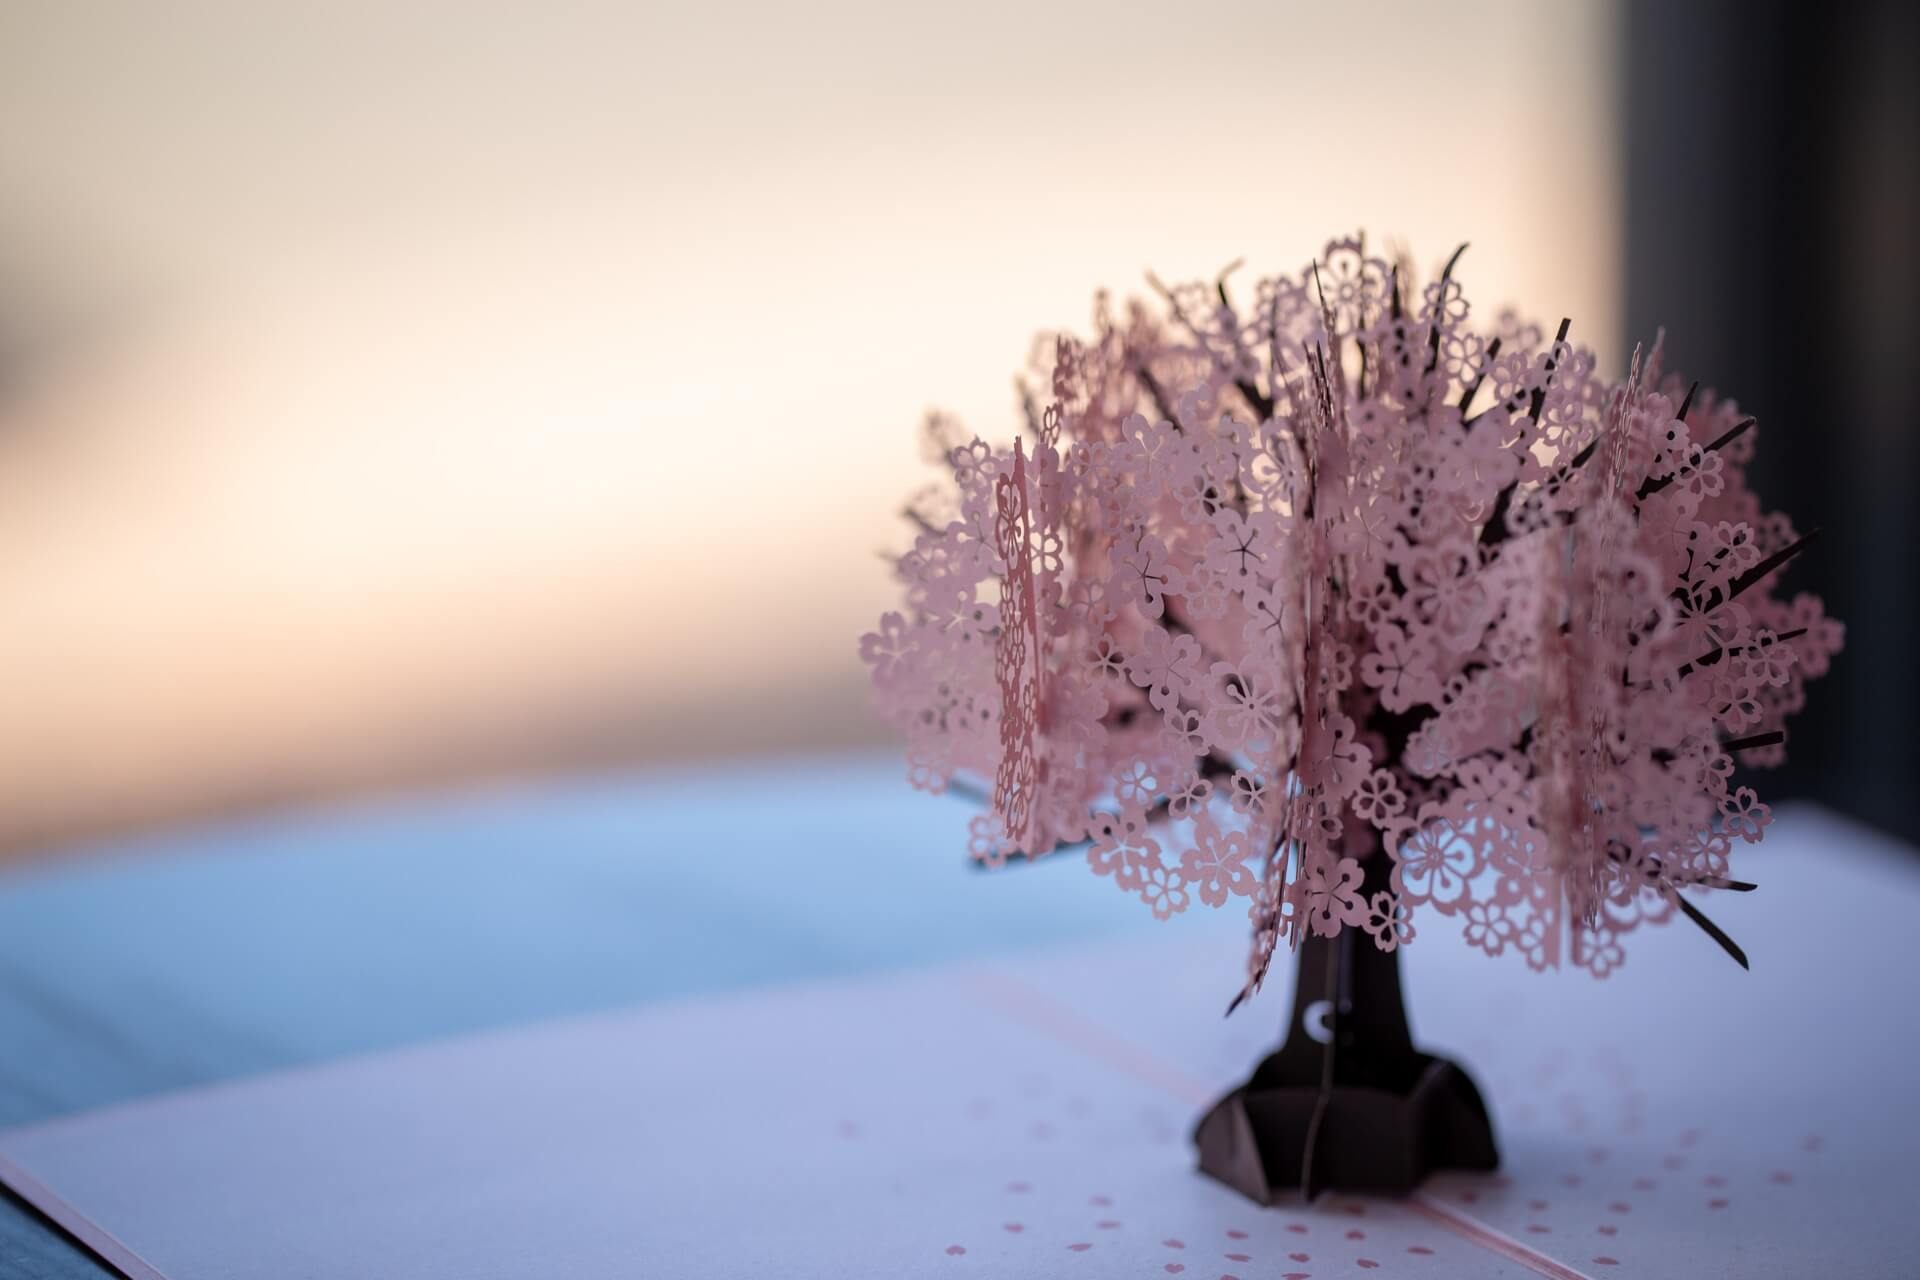 A paper model of a tree with pink blossom